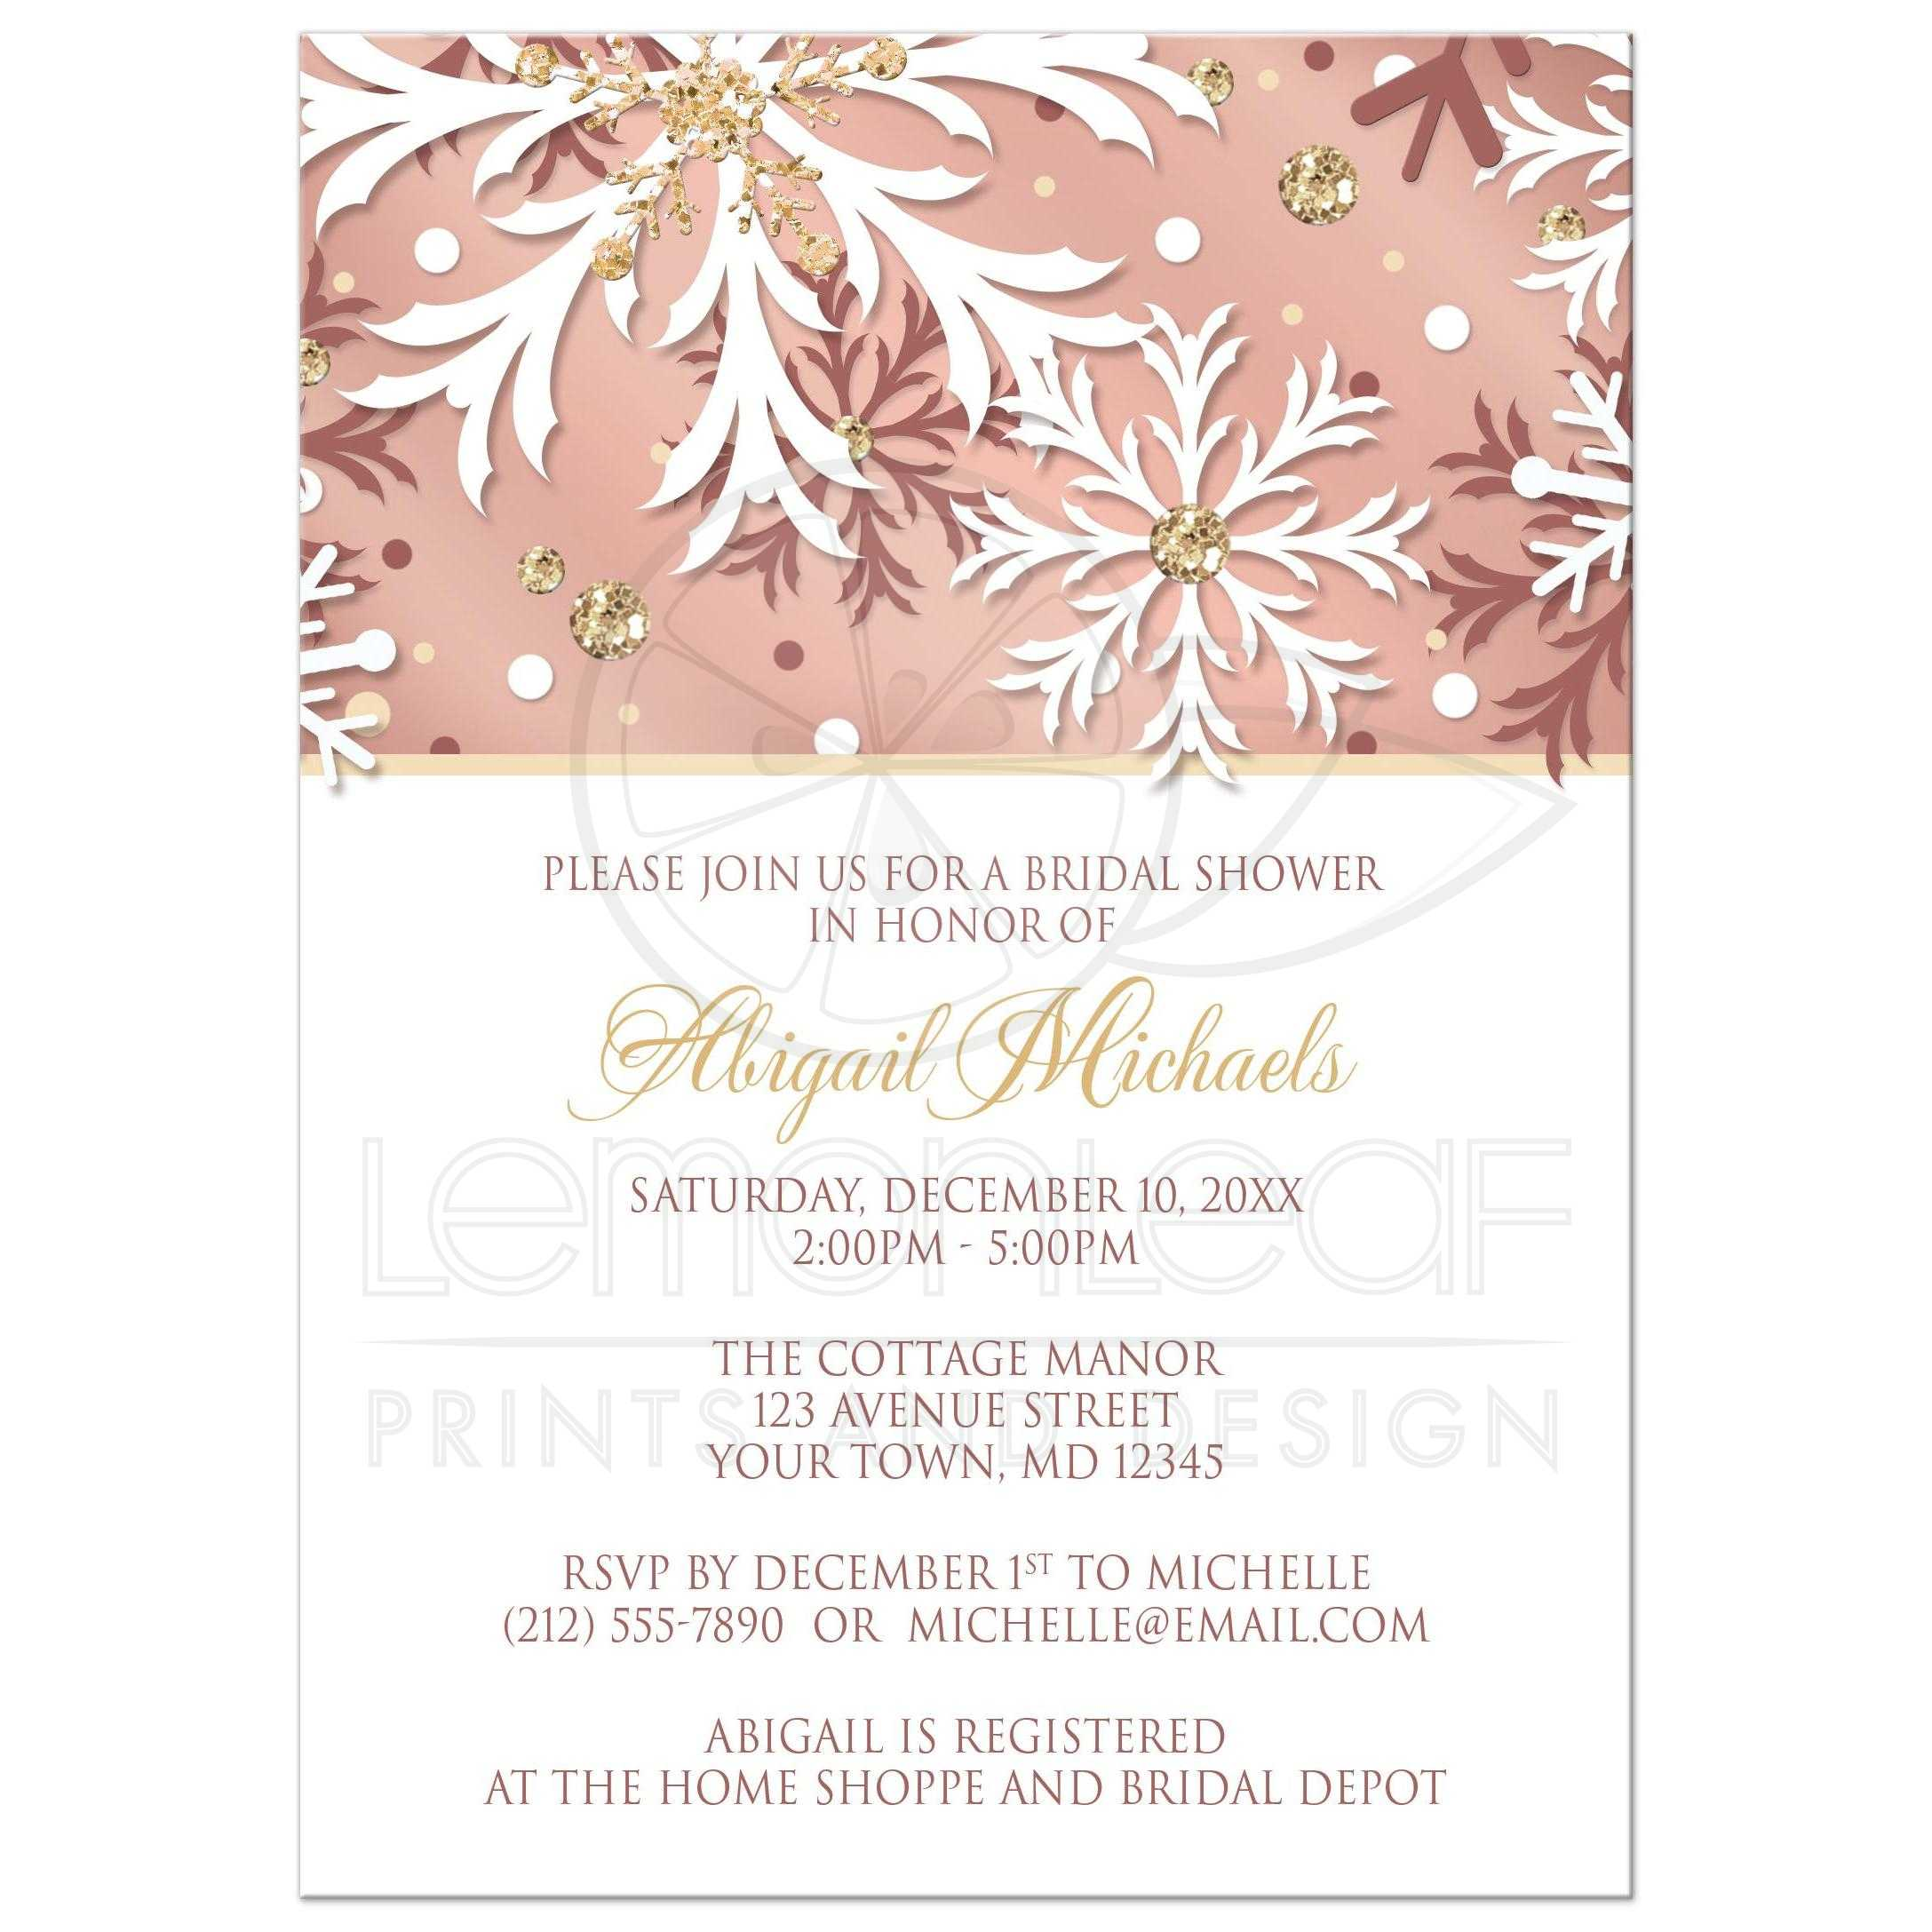 Bridal shower invitations rose gold winter snowflake for Rose gold winter wedding invitations